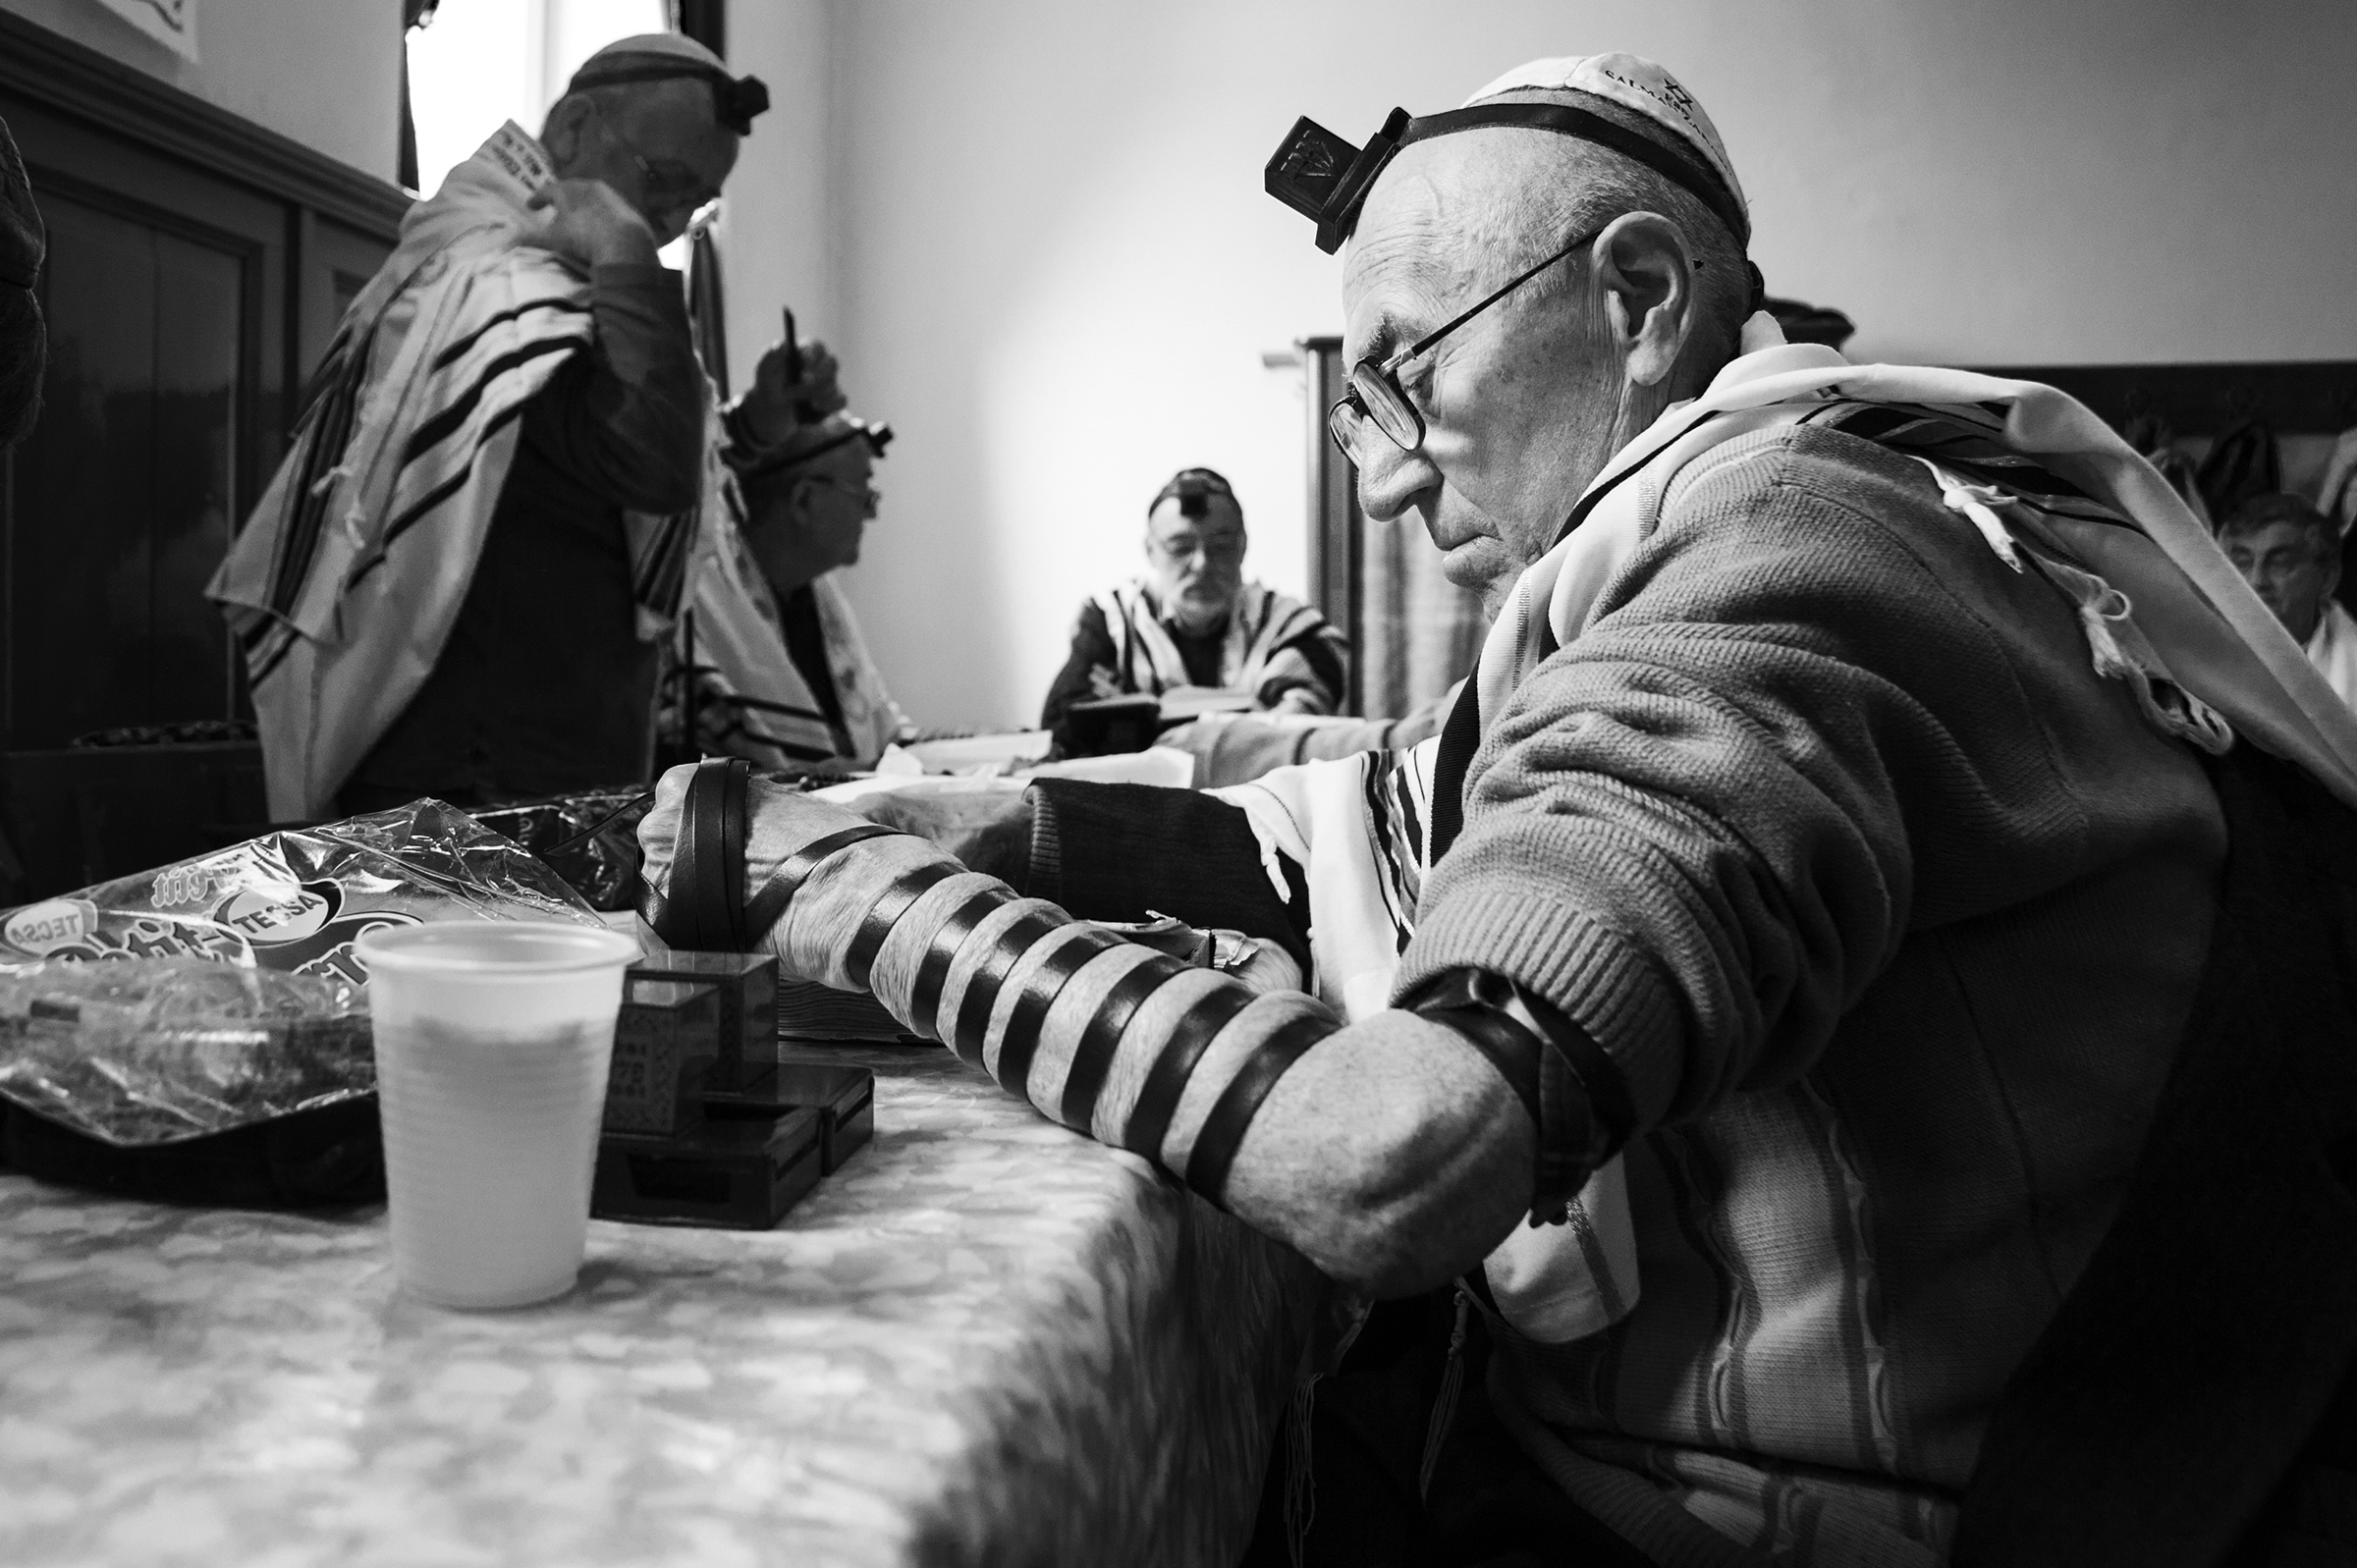 Zakaria Salman studies a religious text with the other members of the minyan in Oradea's only remaining active Sas Chevra Synagogue on April 11, 2013. (Photo by Daniel Owen/GroundTruth)